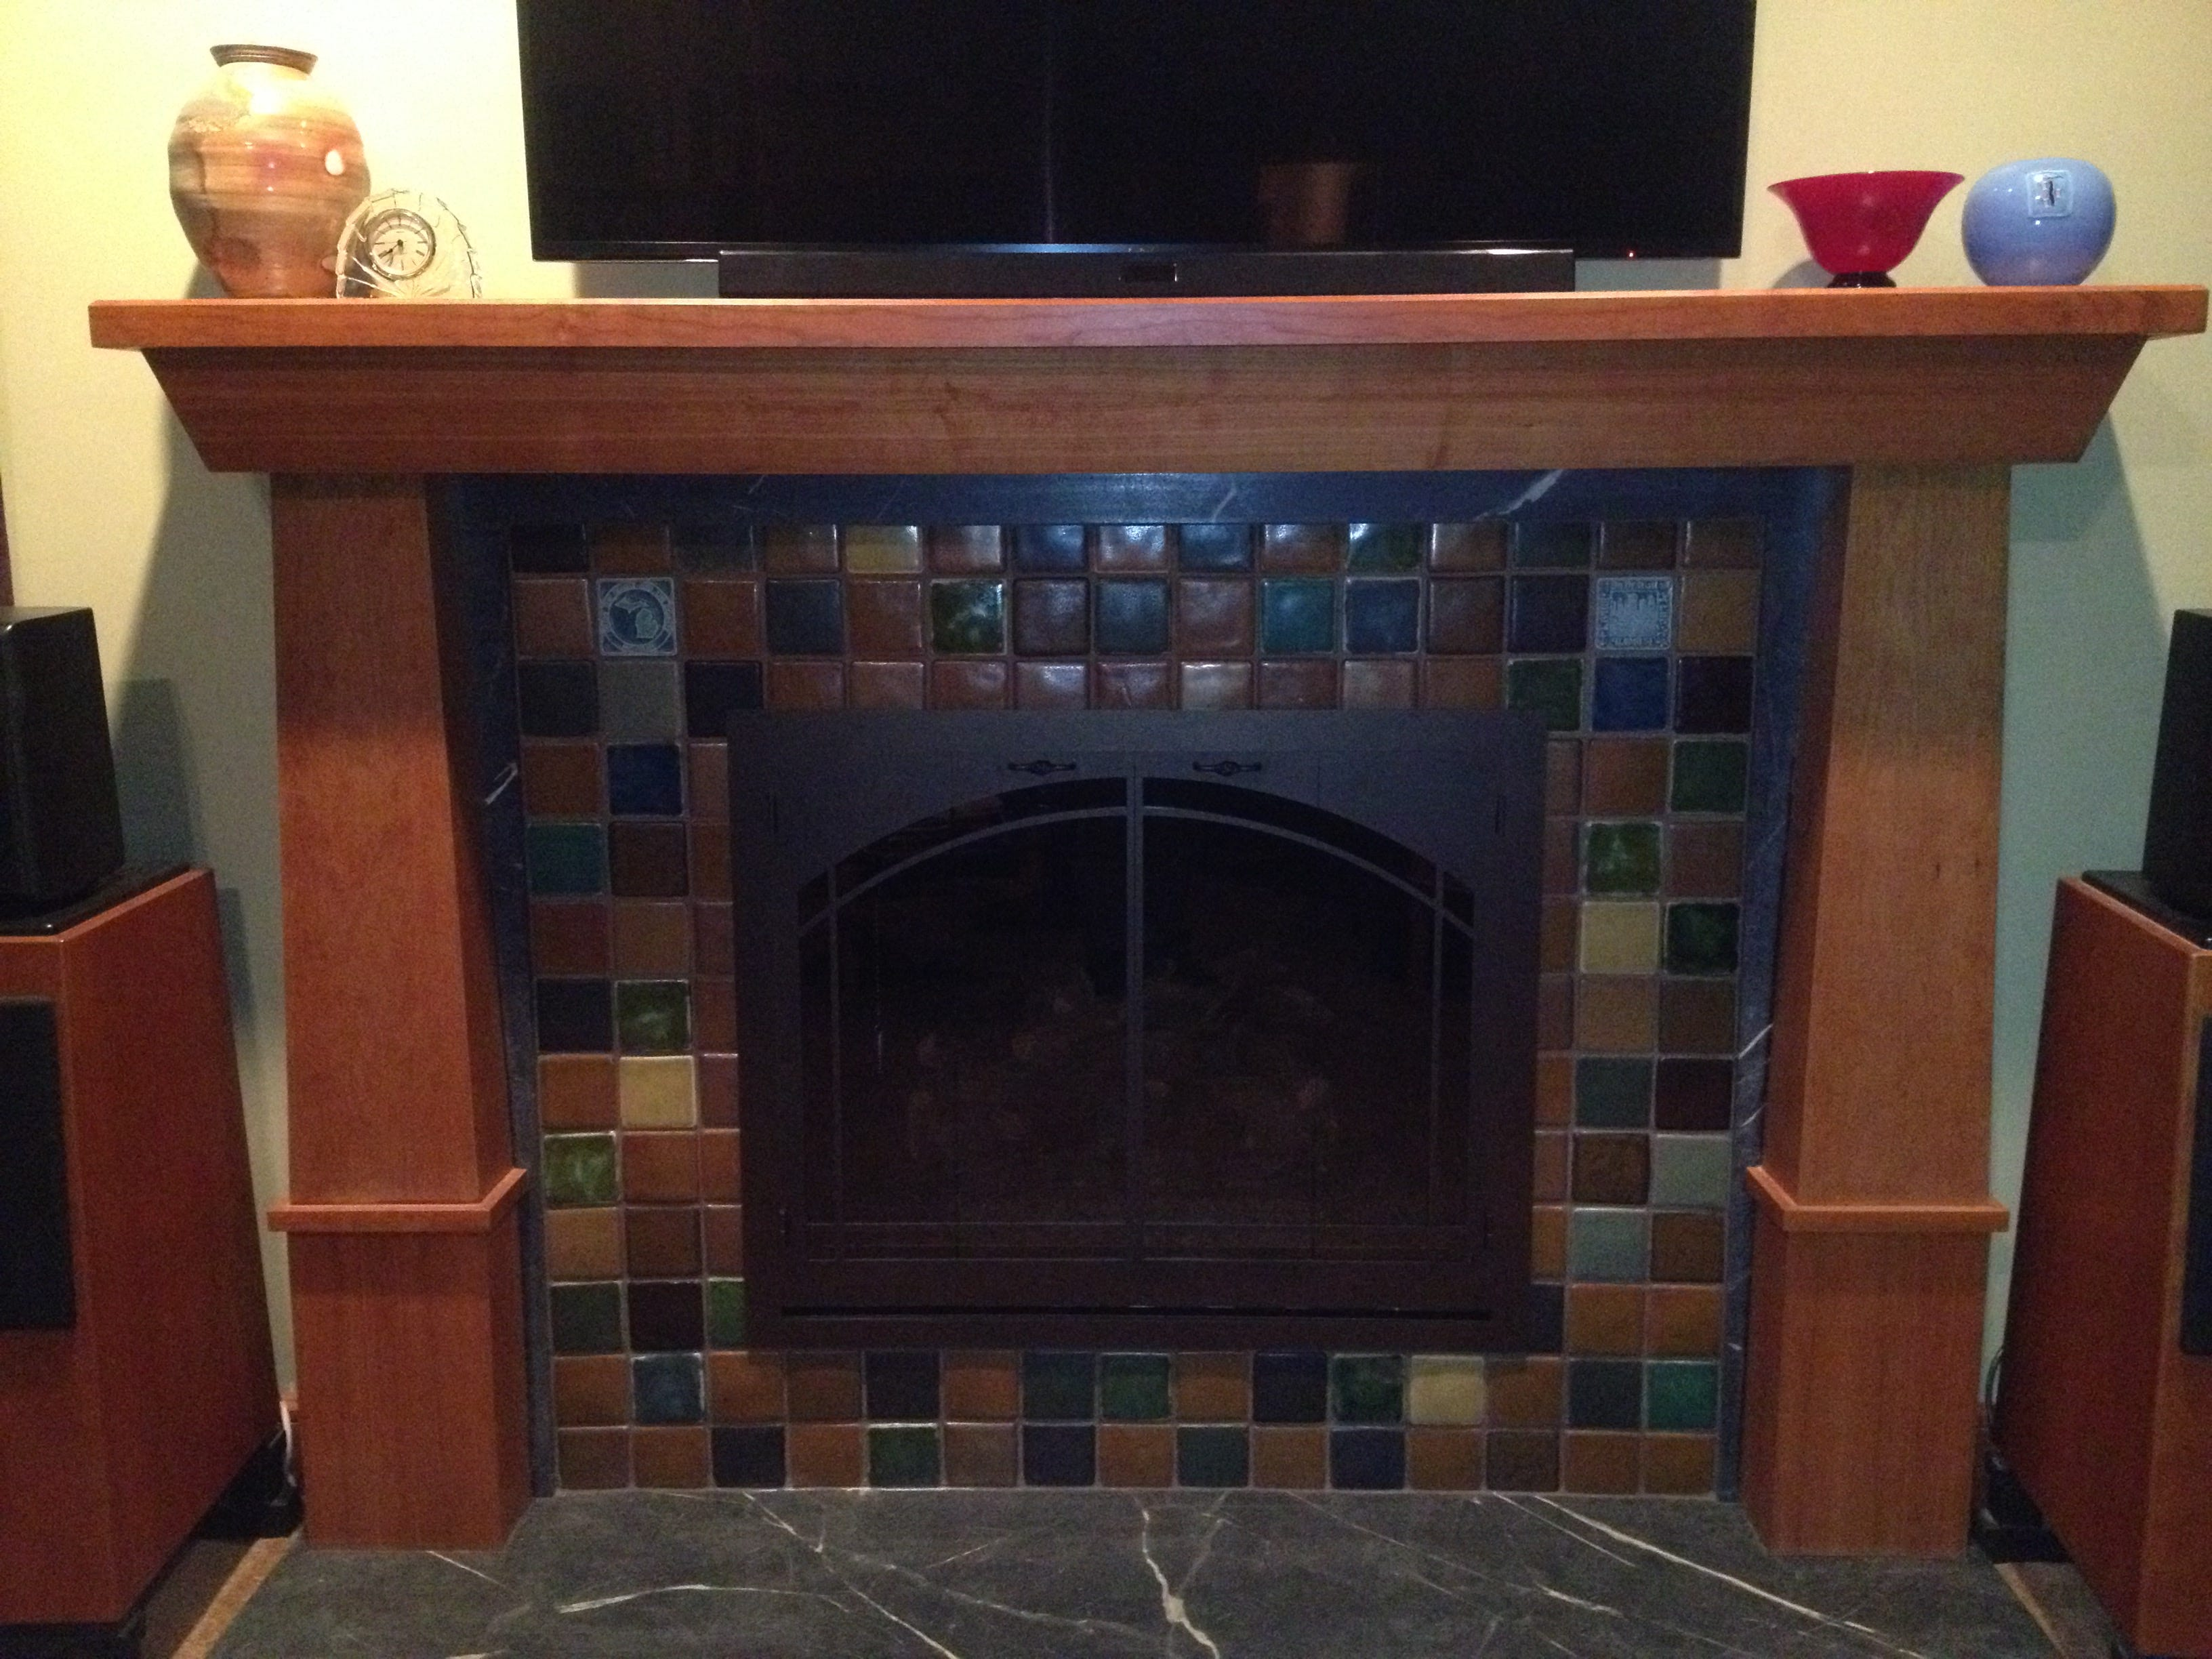 Pewabic fireplace makeover warms homeowners' hearts